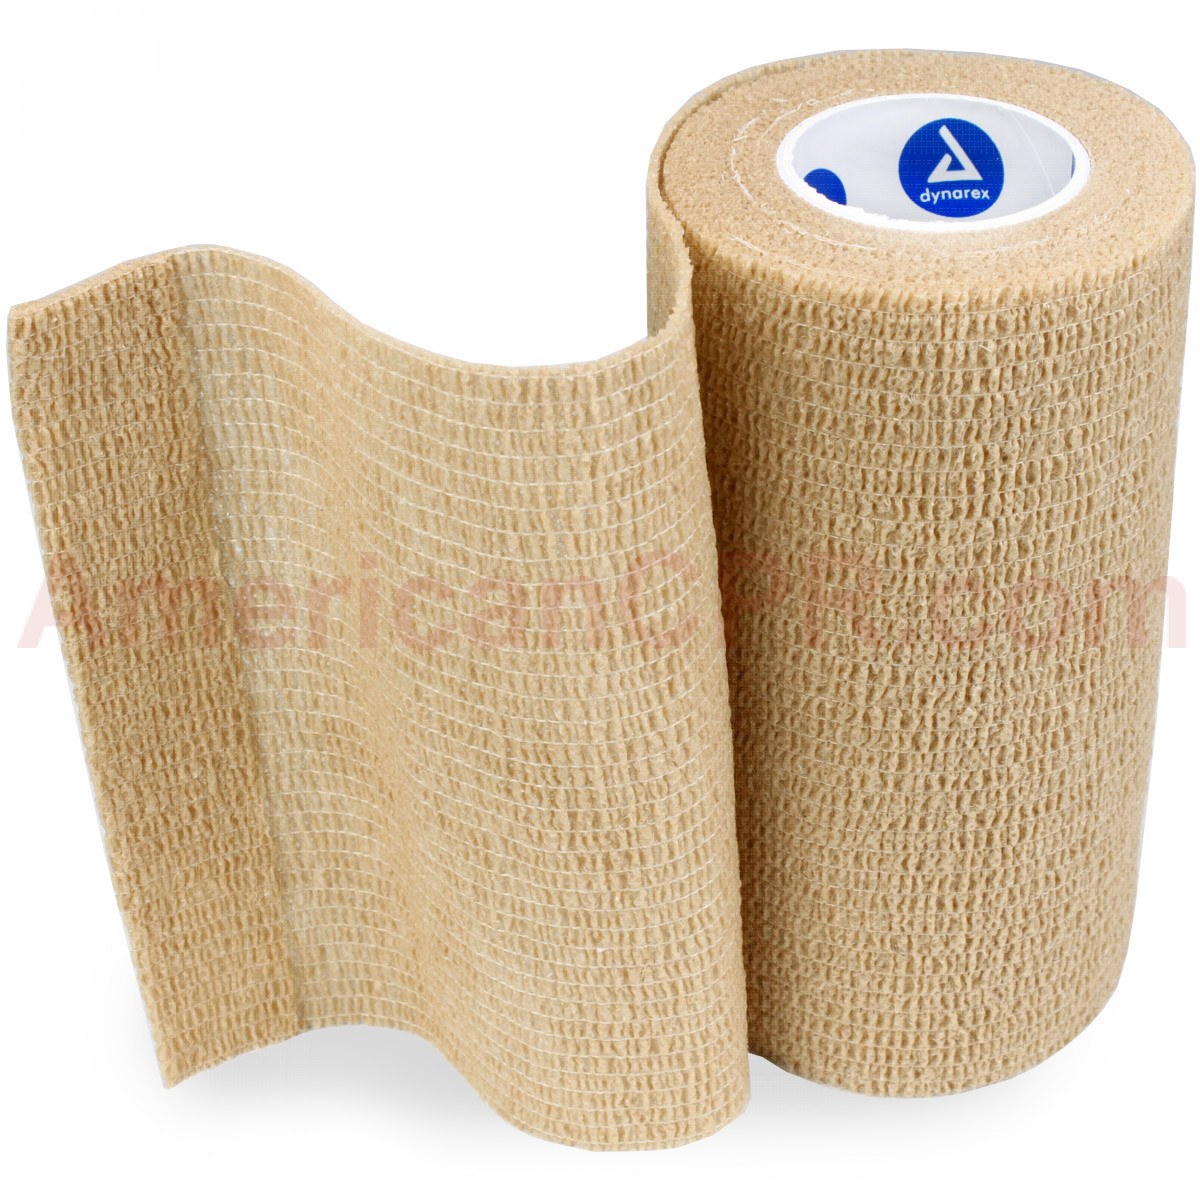 "Sensi Wrap, Self-Adherent - Latex Free, 4"" x 5 yds Tan, 1 each, Dynarex"